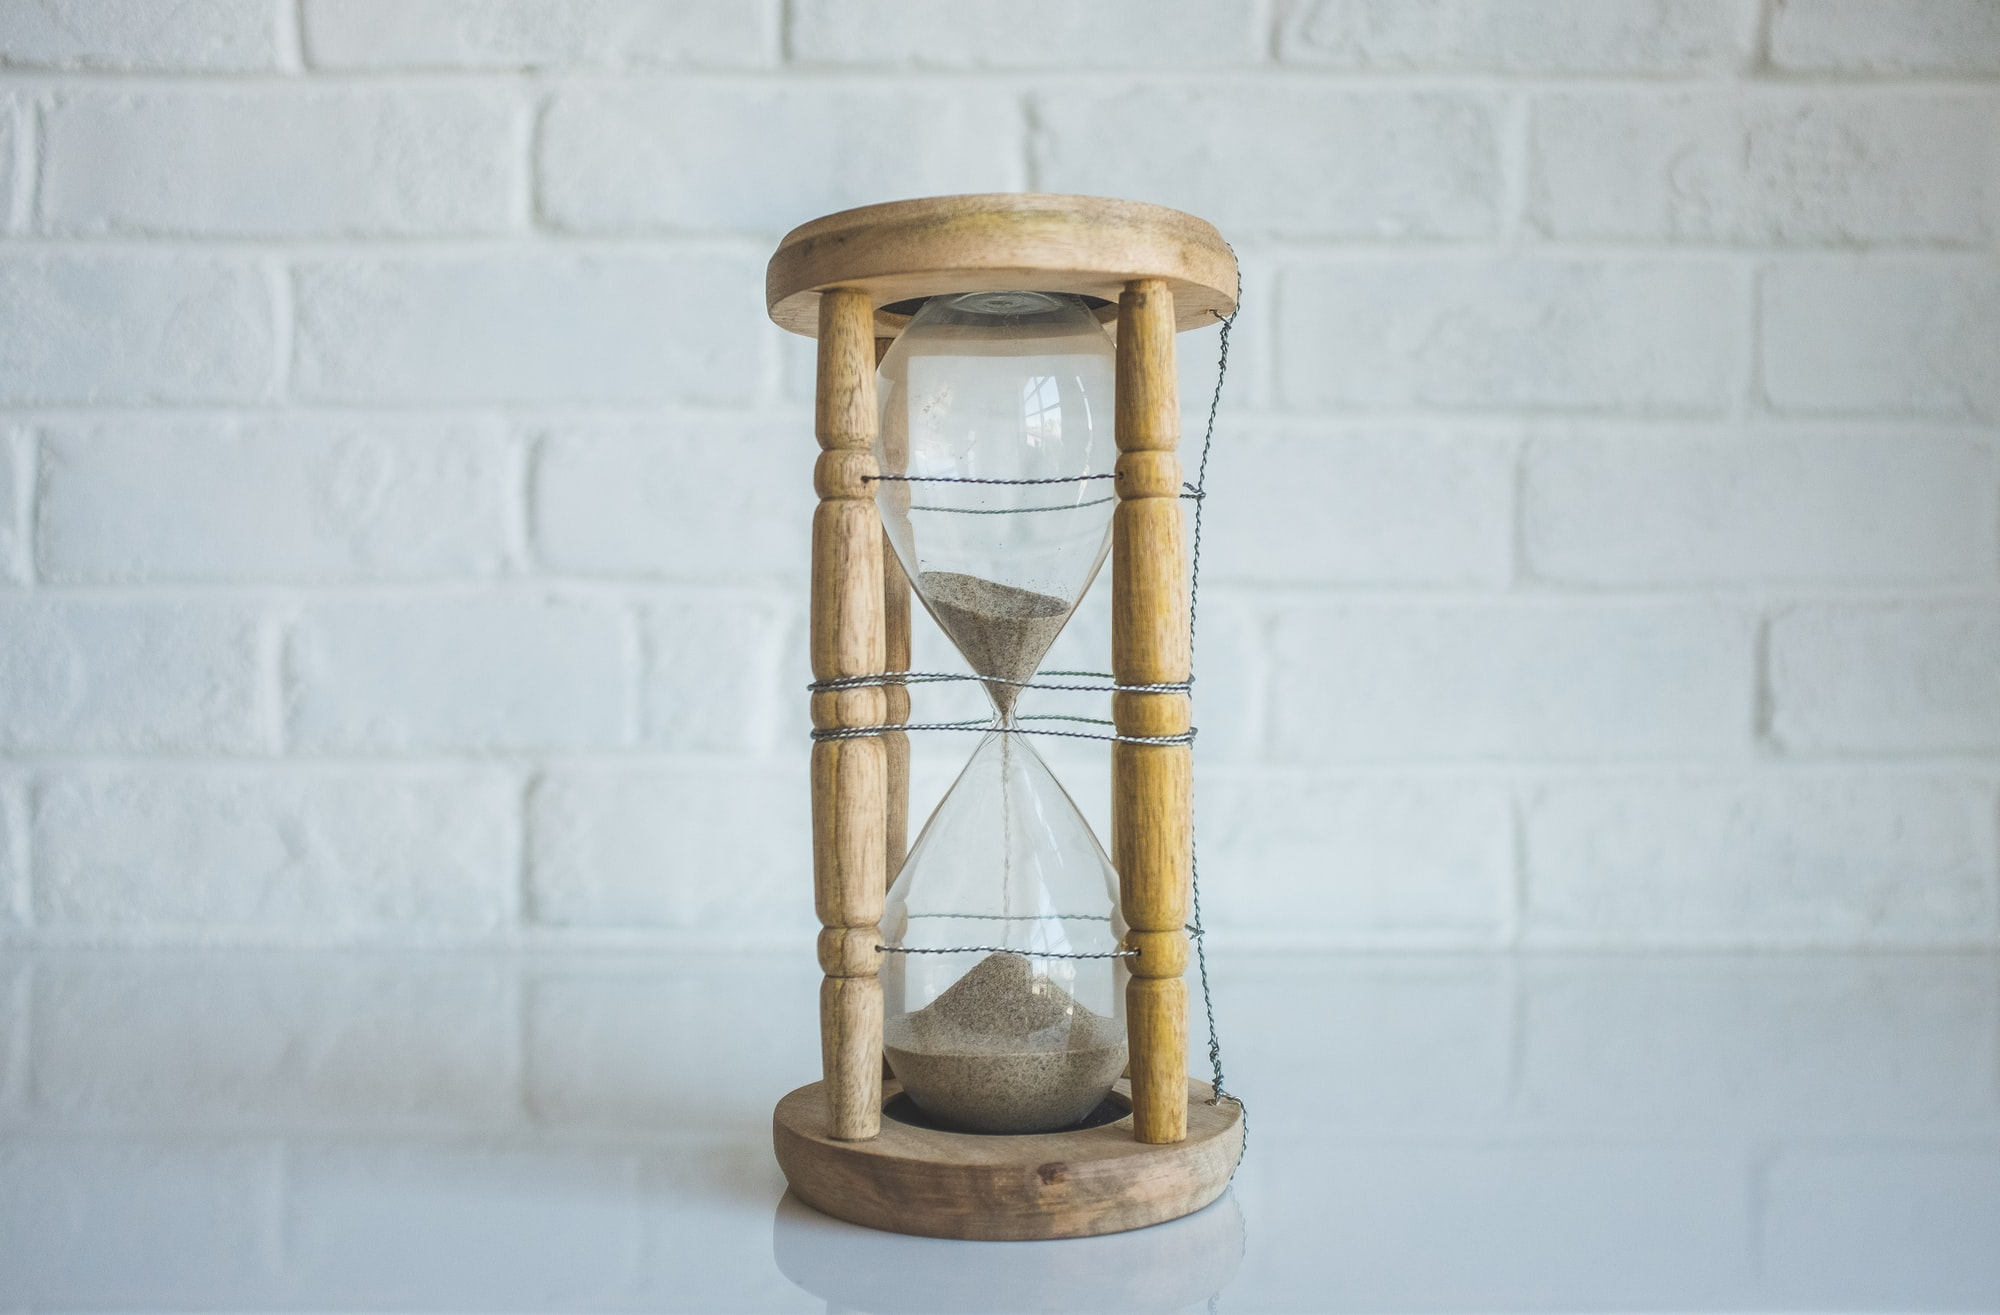 Sand in an hourglass